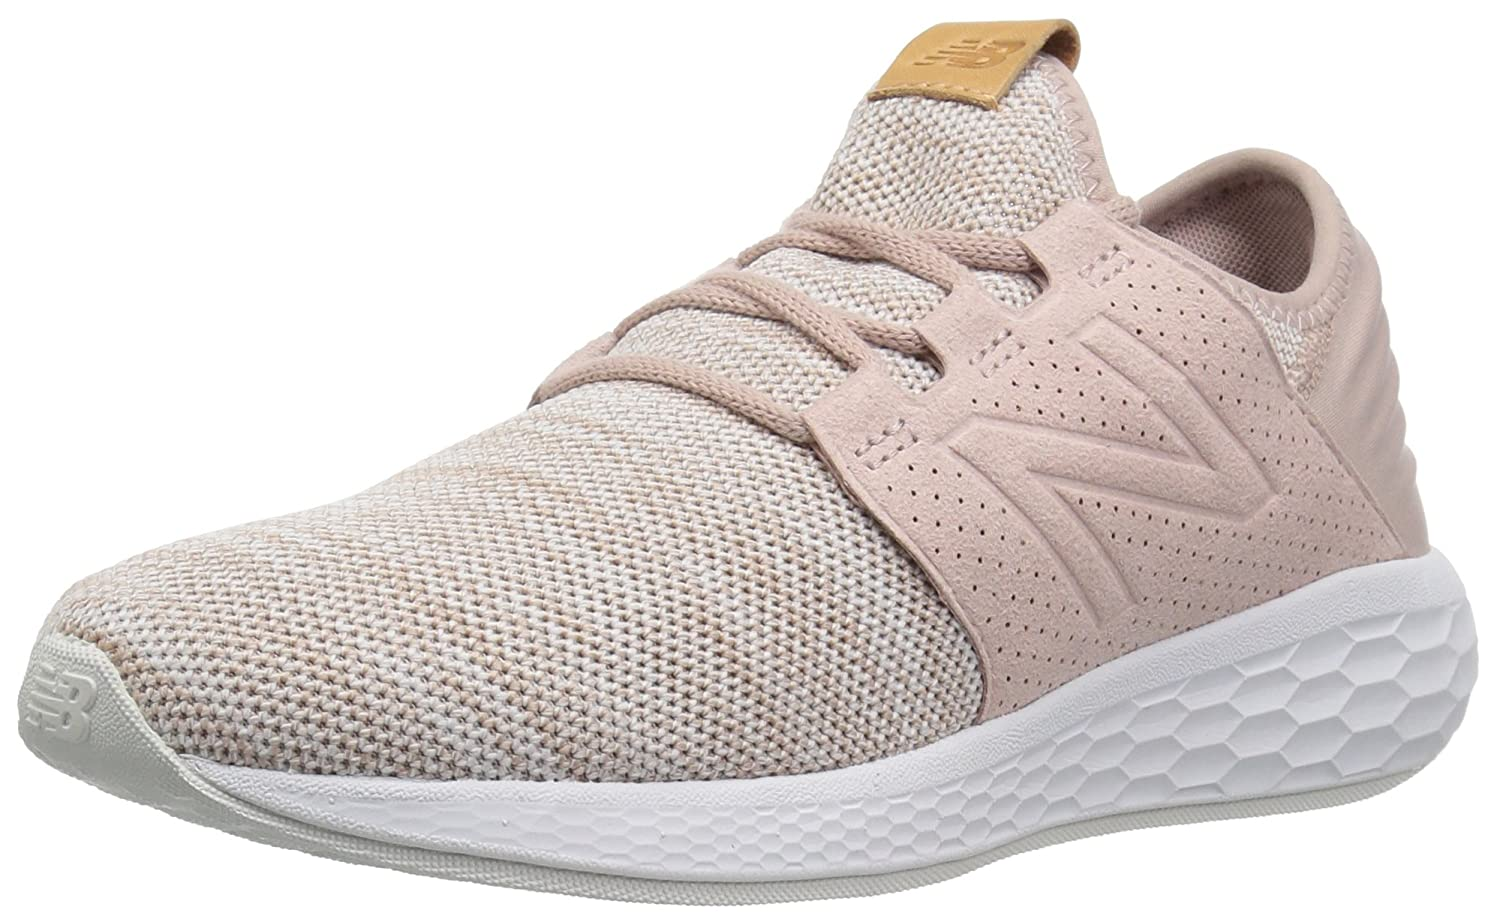 New Balance Women's Cruz V2 Fresh 11 Foam Running Shoe B075R7YT38 11 Fresh D US|Charm 8566f8